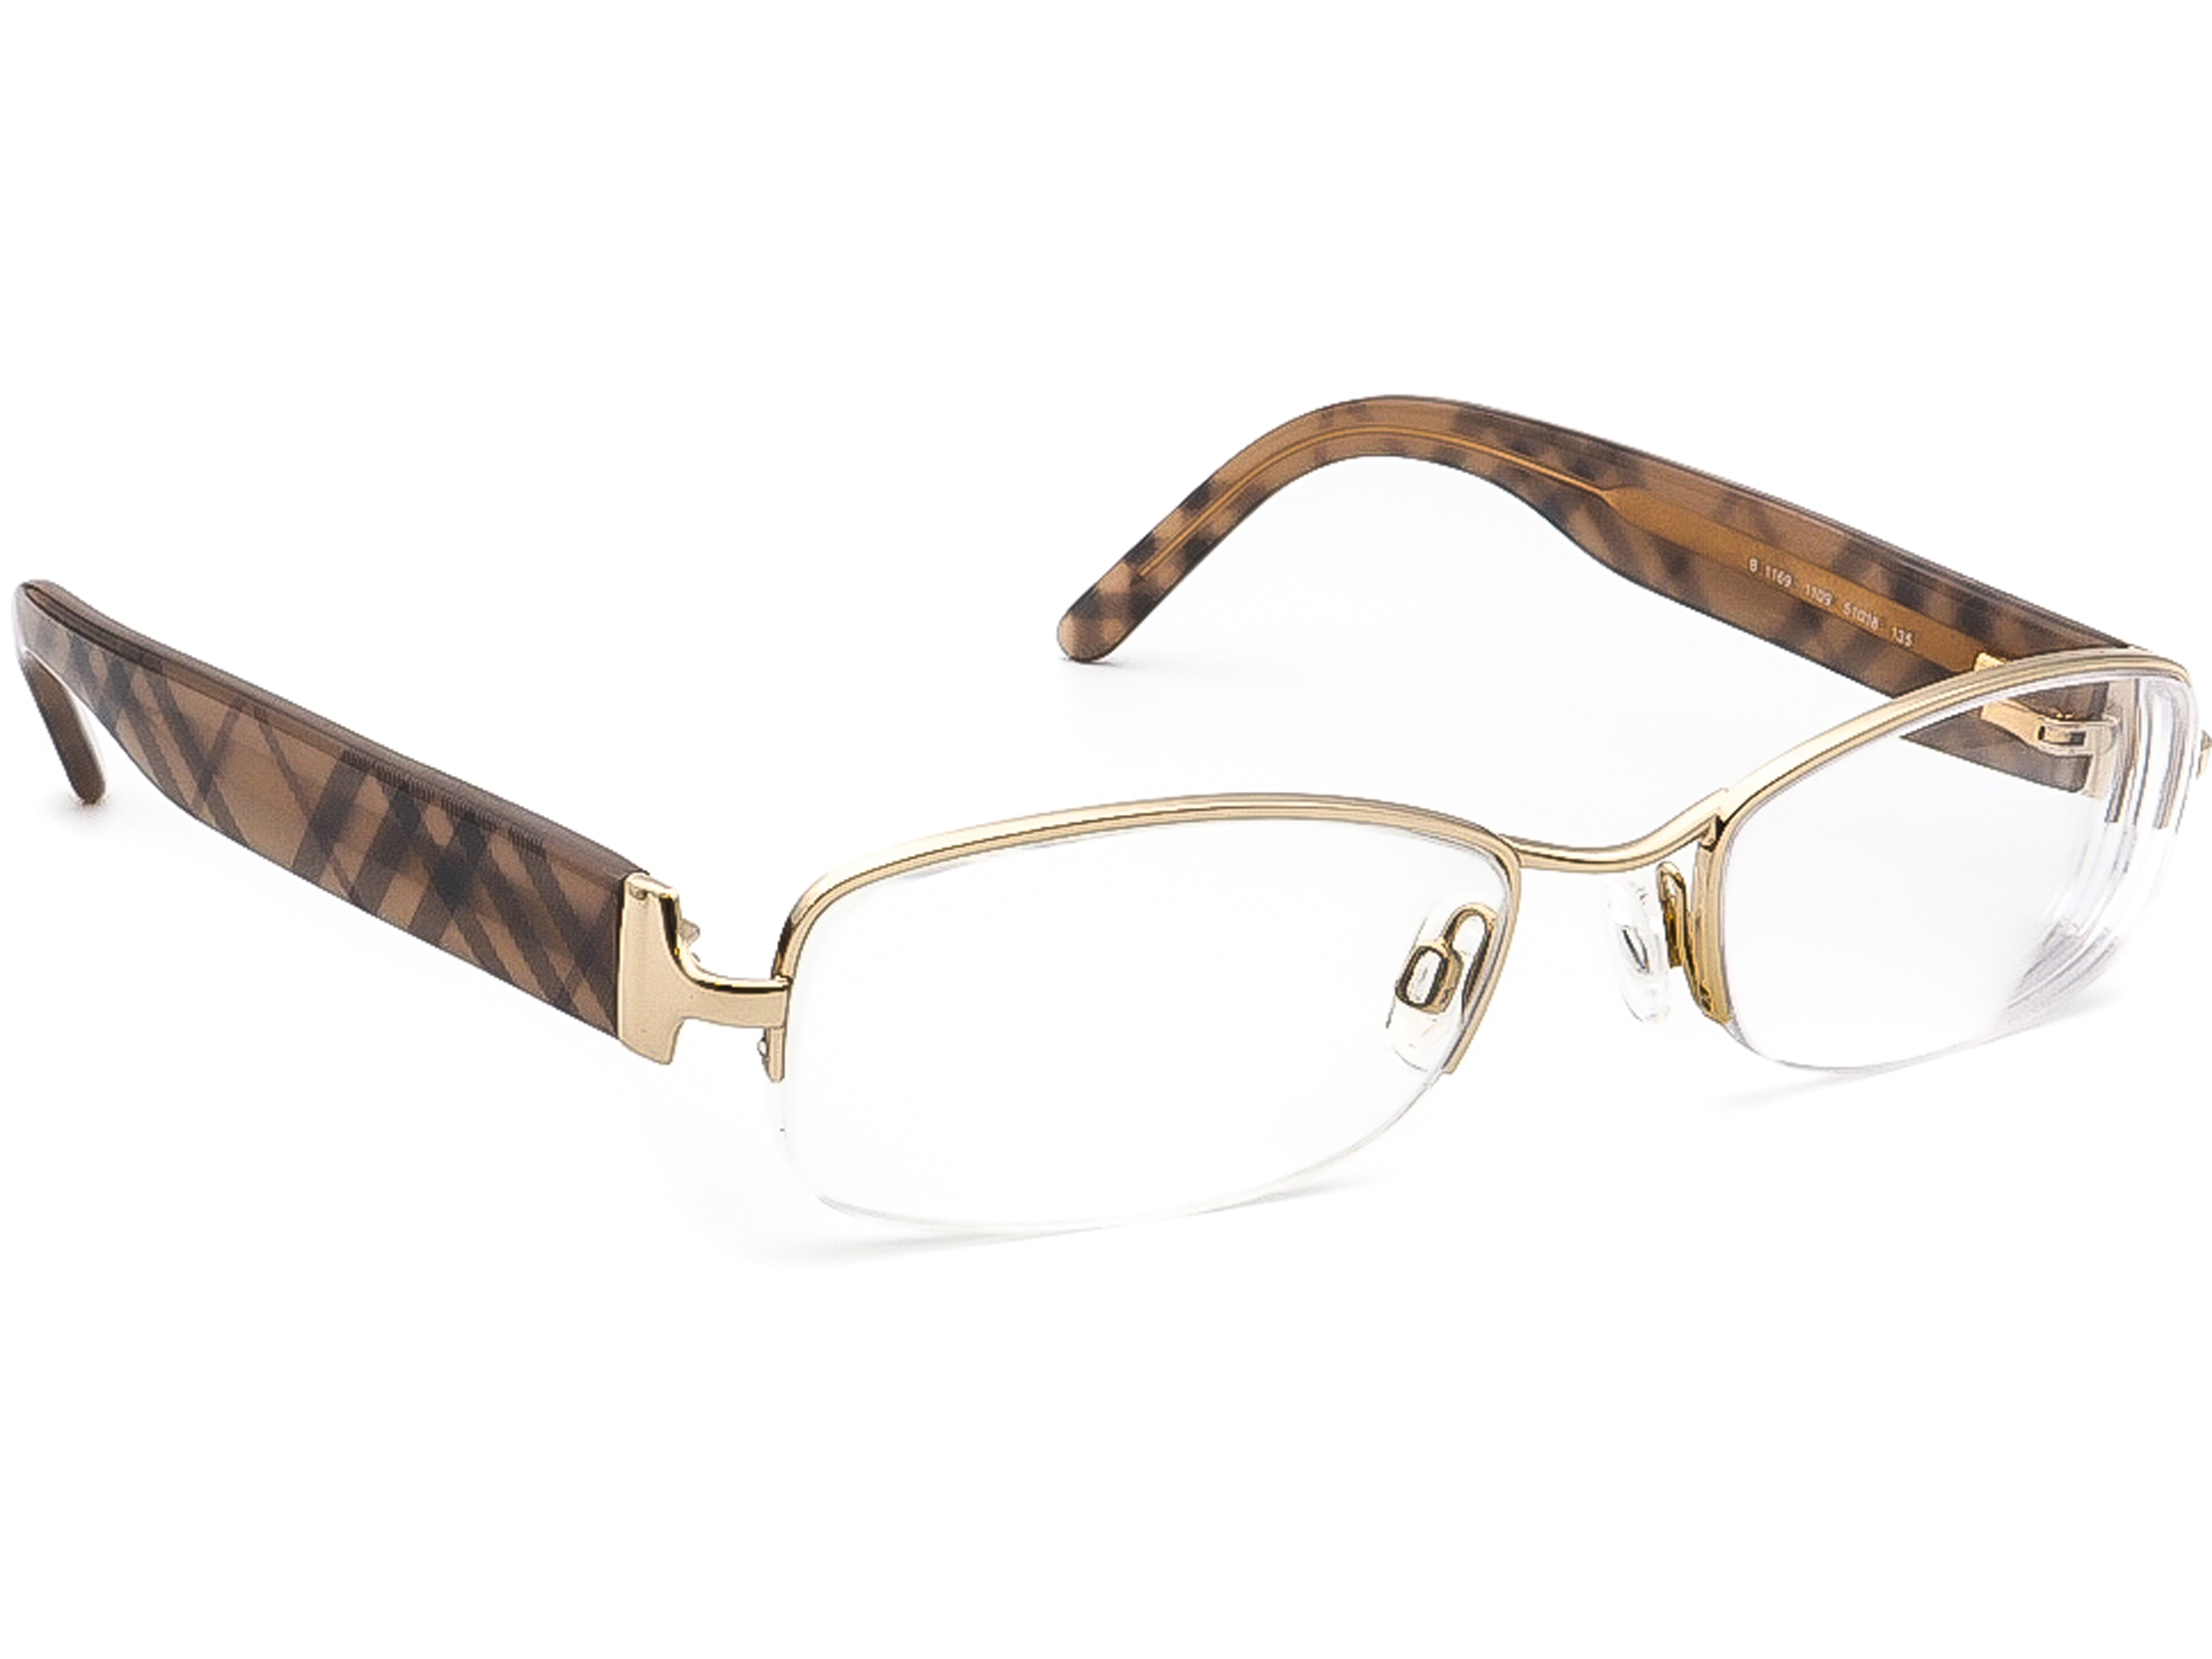 Burberry B 1169 1109 Eyeglasses